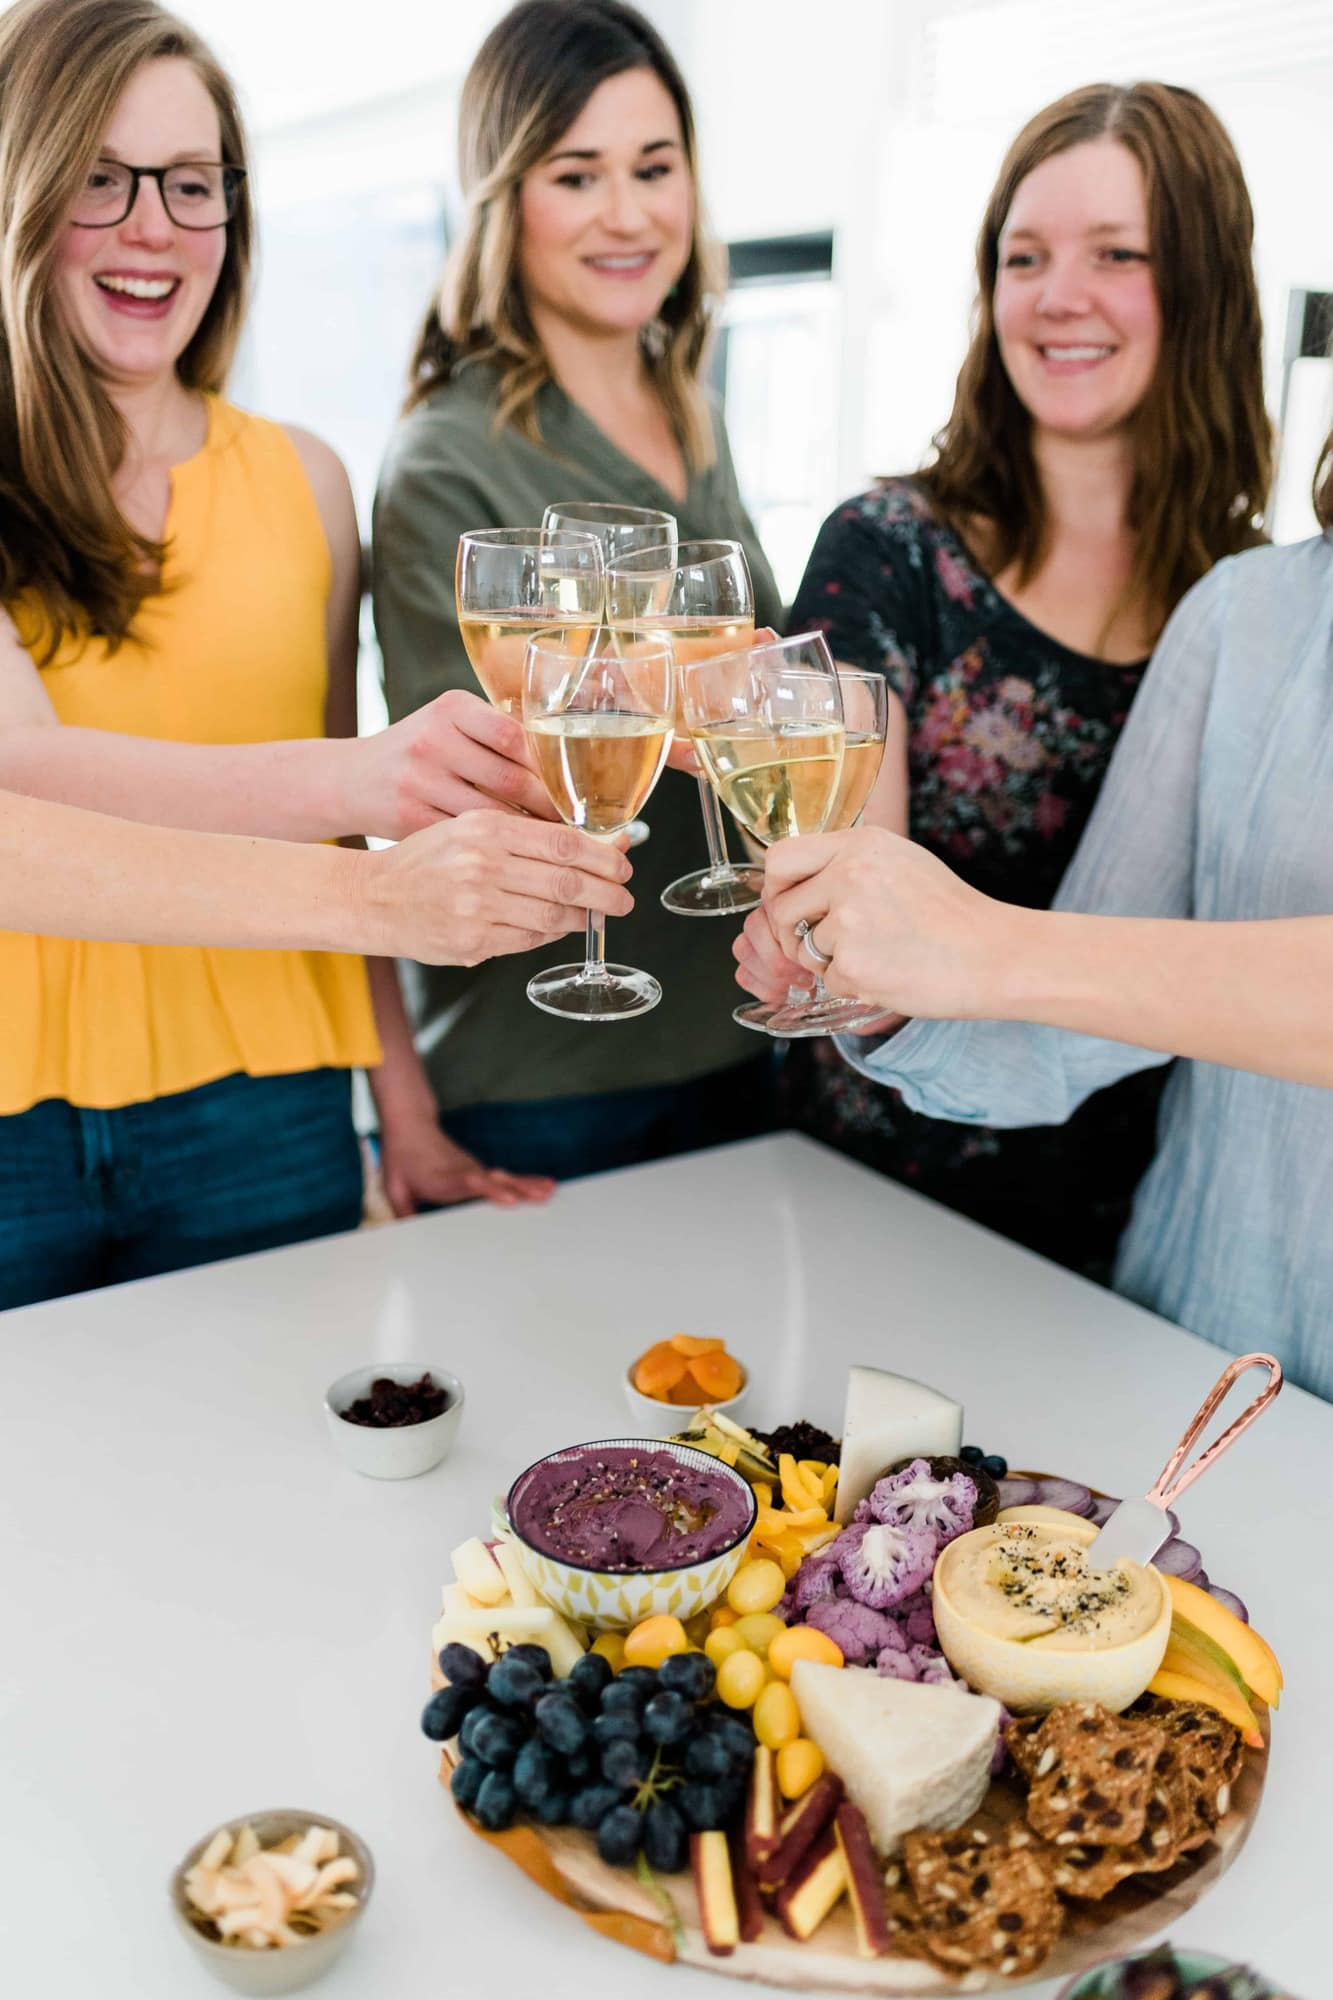 Six women clinking white wine glasses together